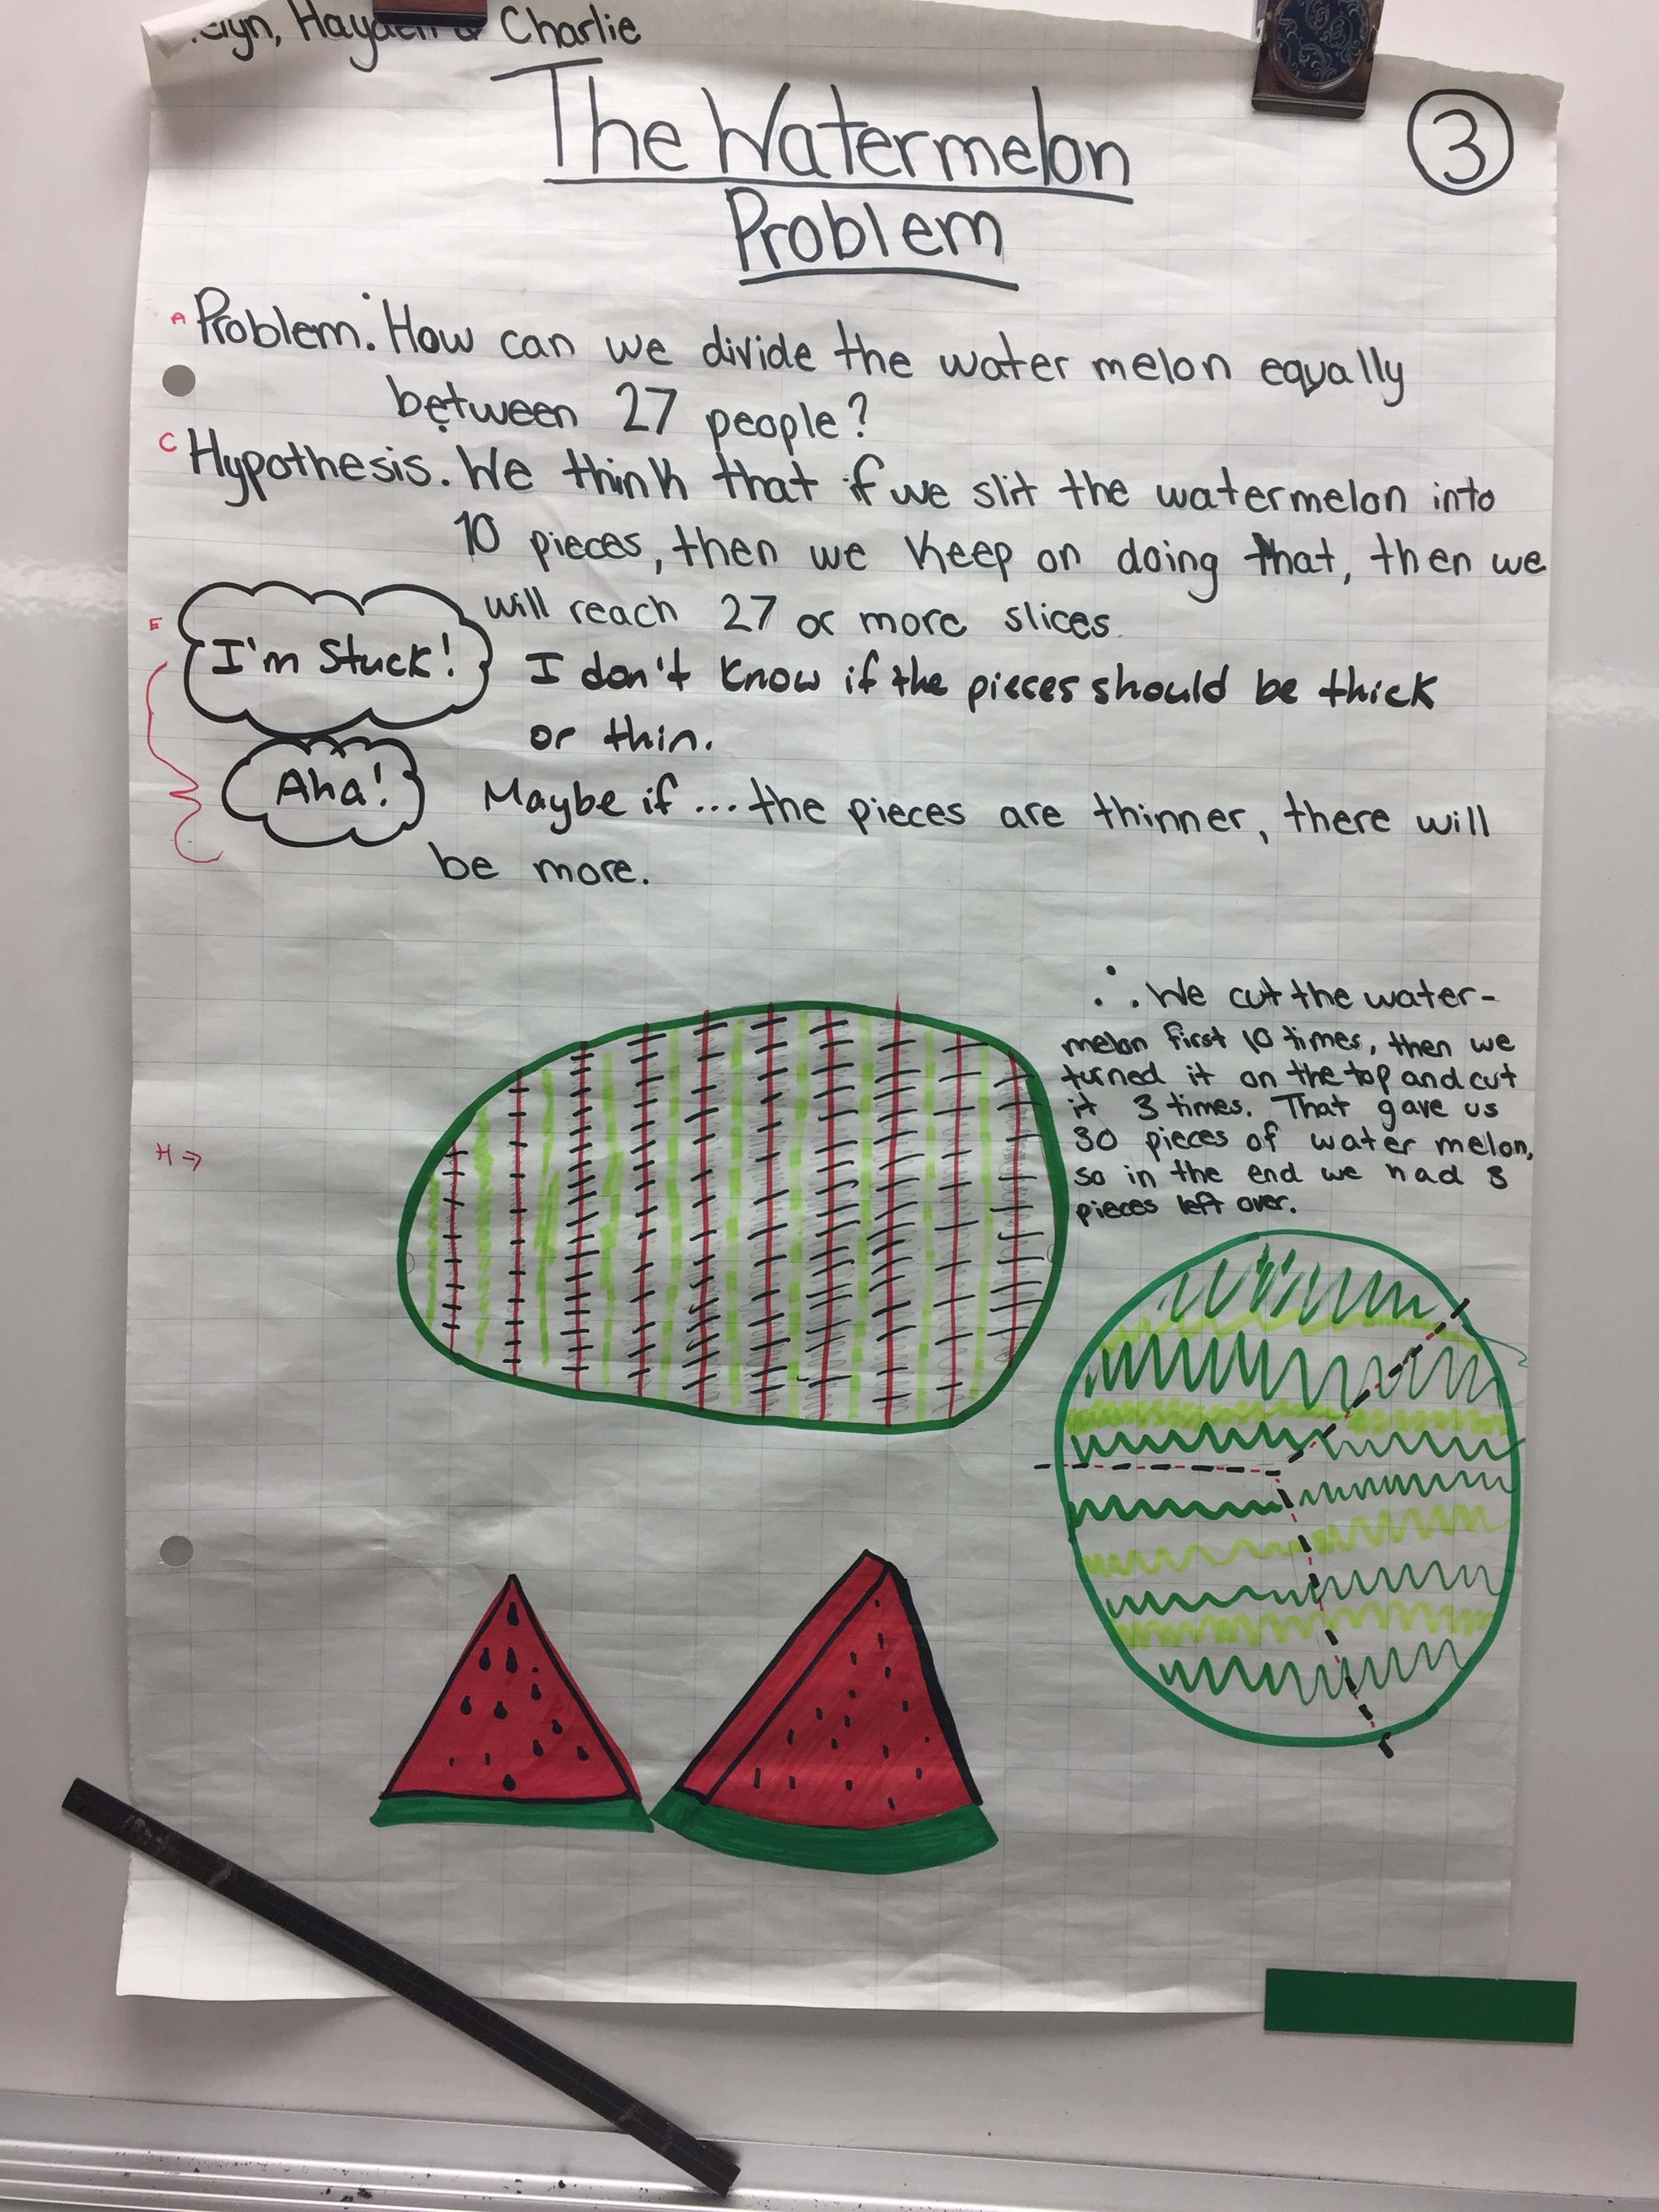 2016-09-14-the-watermelon-problem-student-solutions-10.jpg